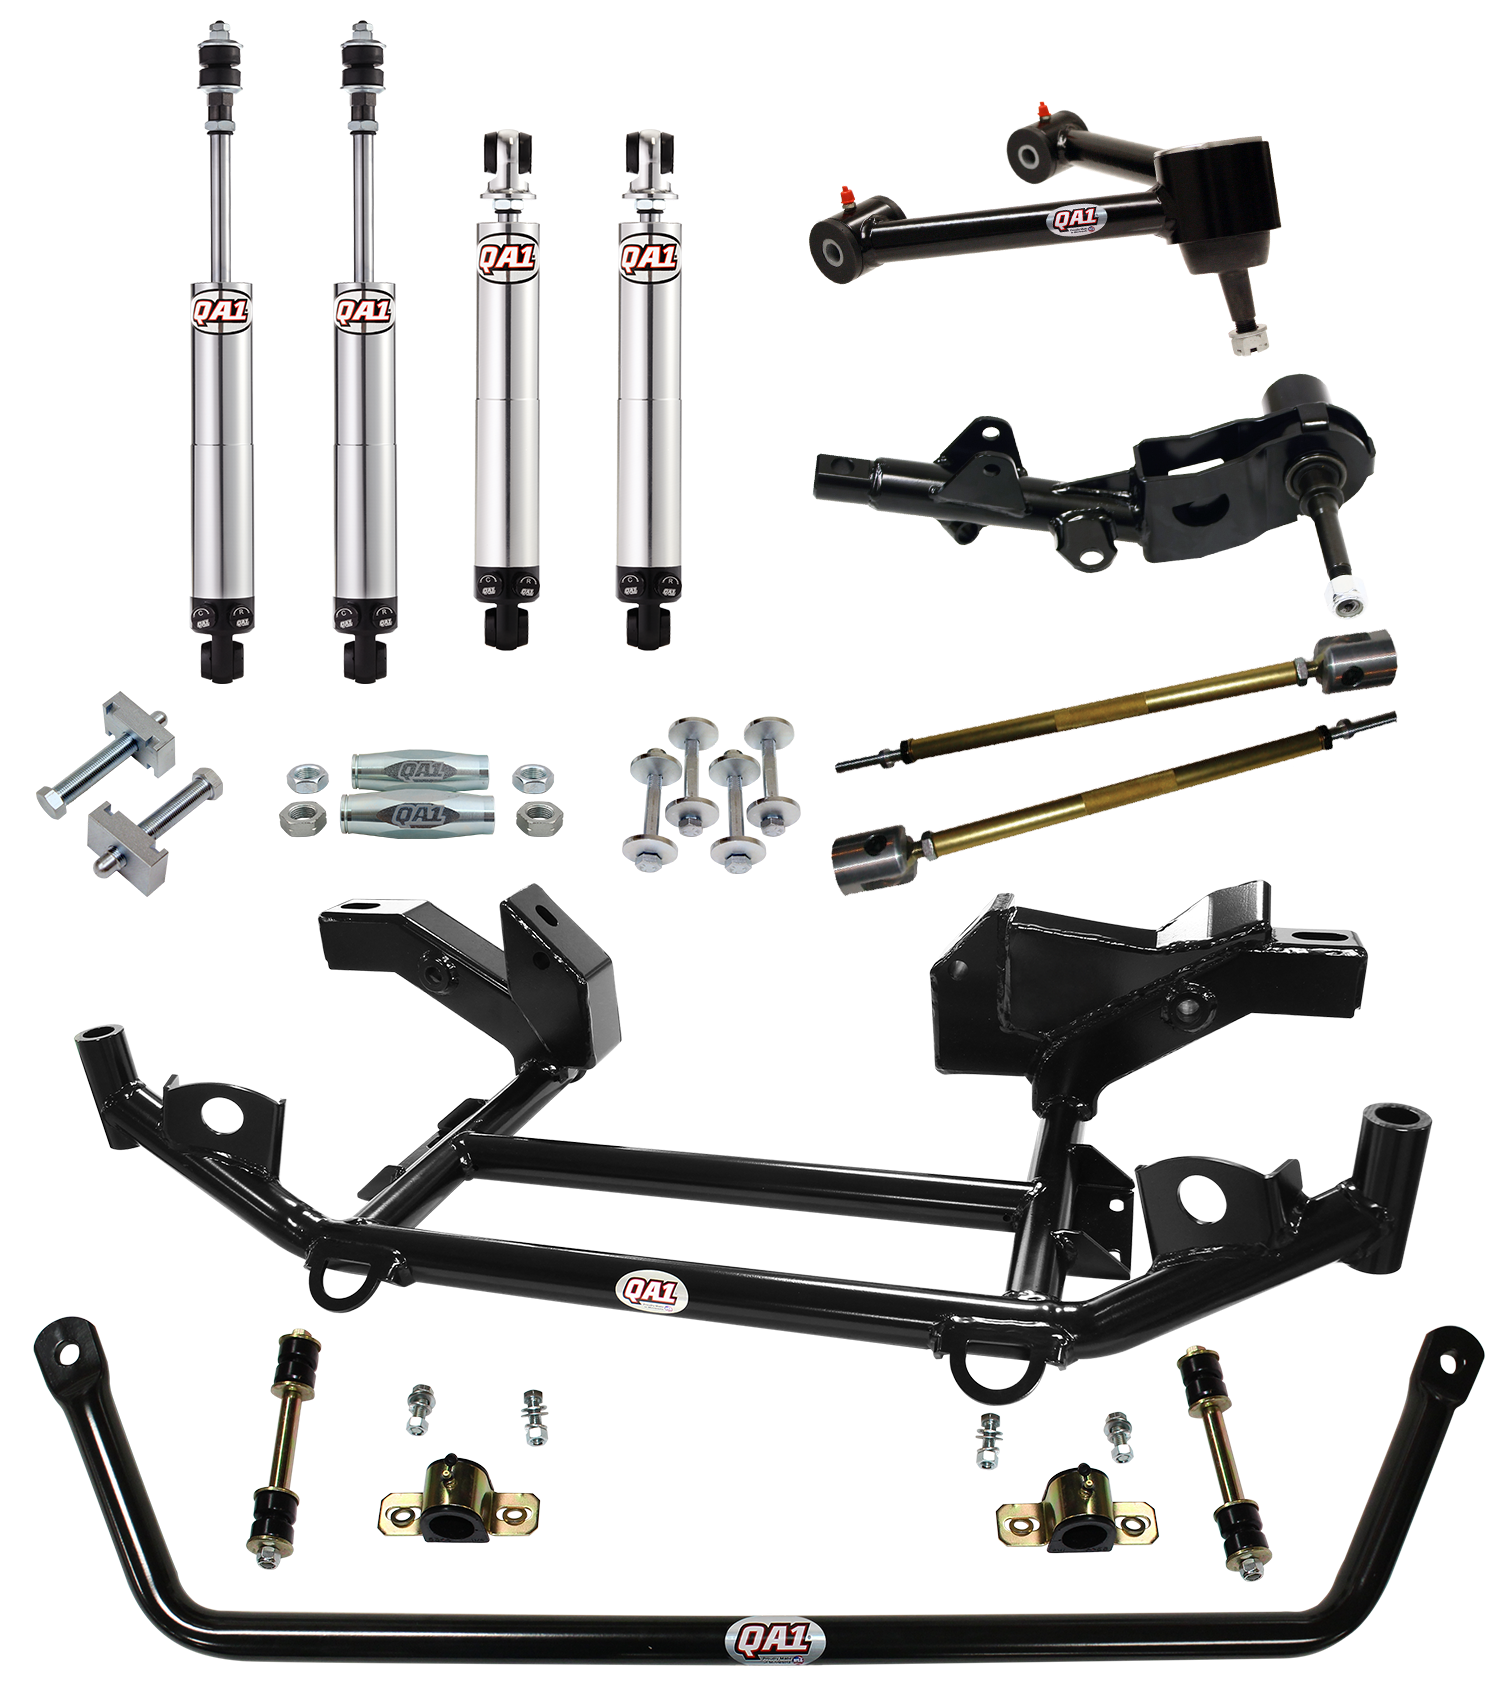 Suspensions clip 3 bolt. Handling suspension kits for